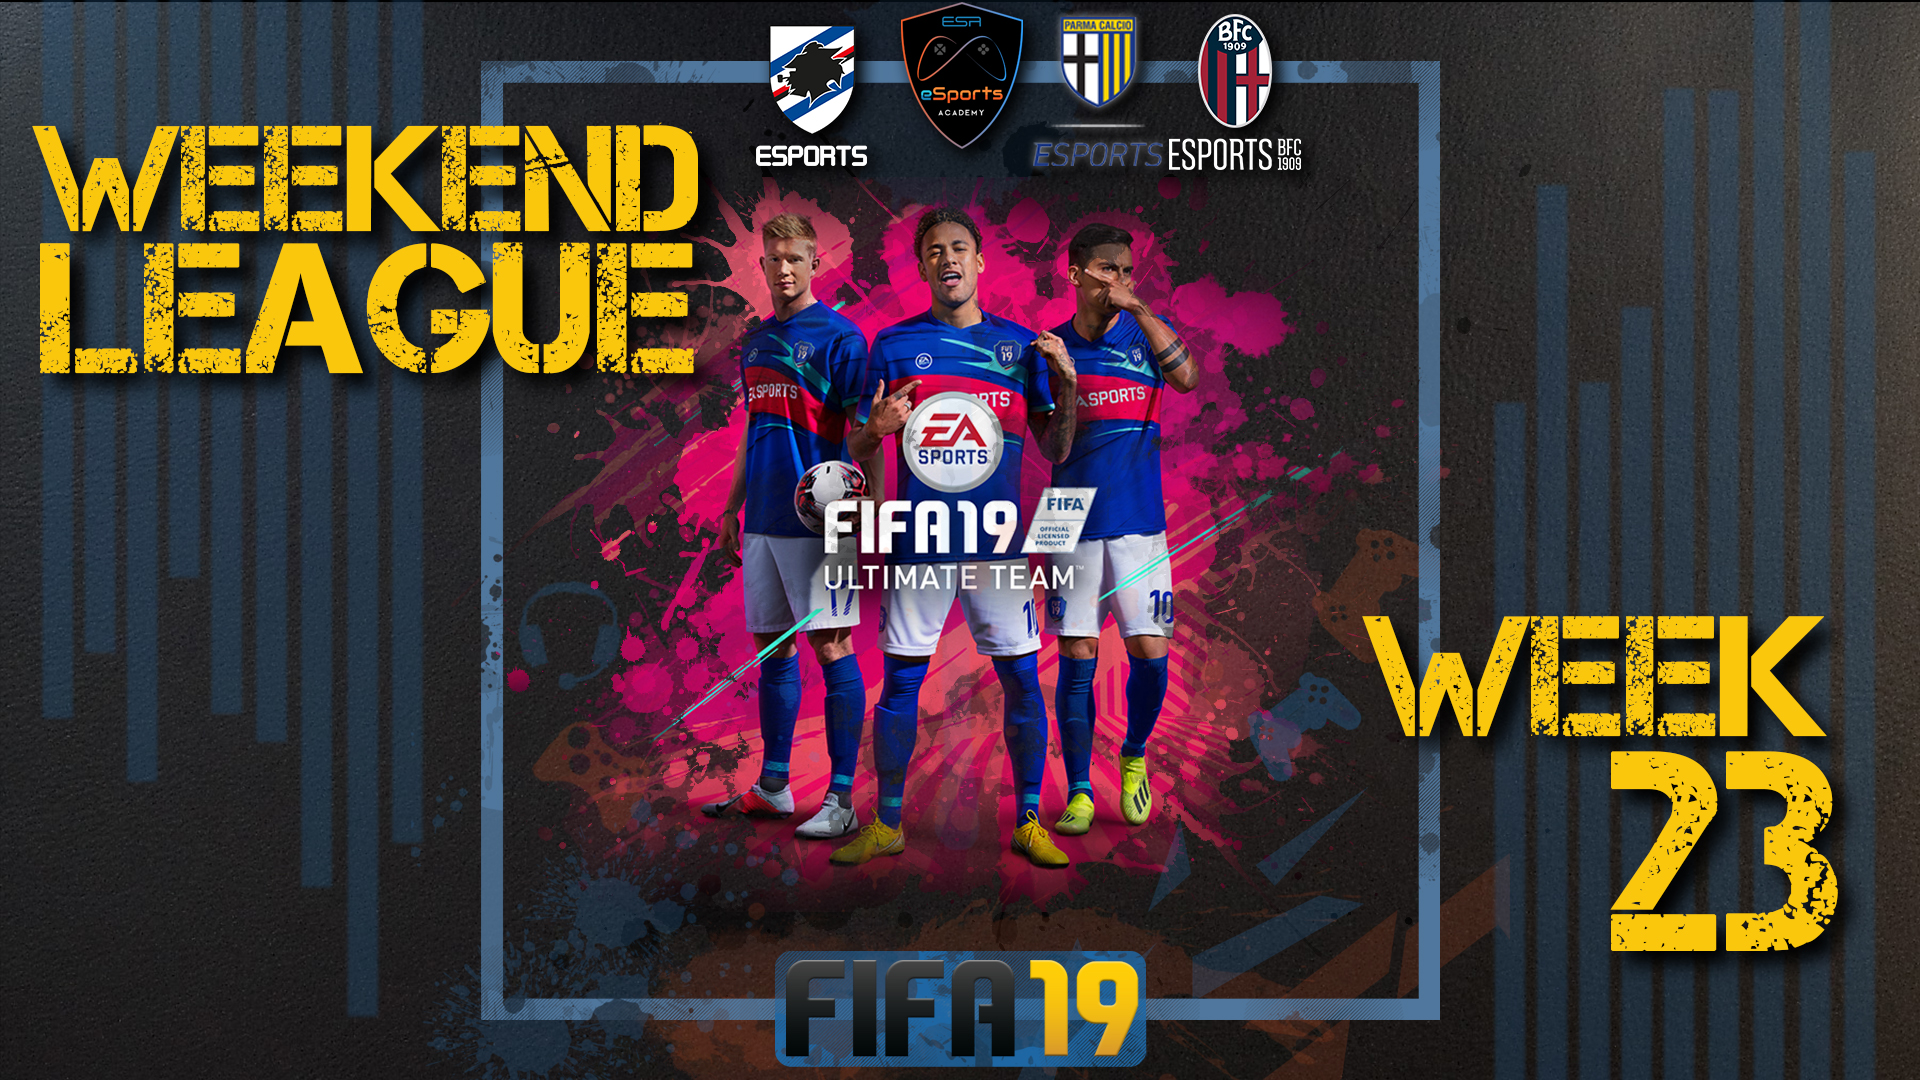 Fifa19_Weekend League_Week23.jpg